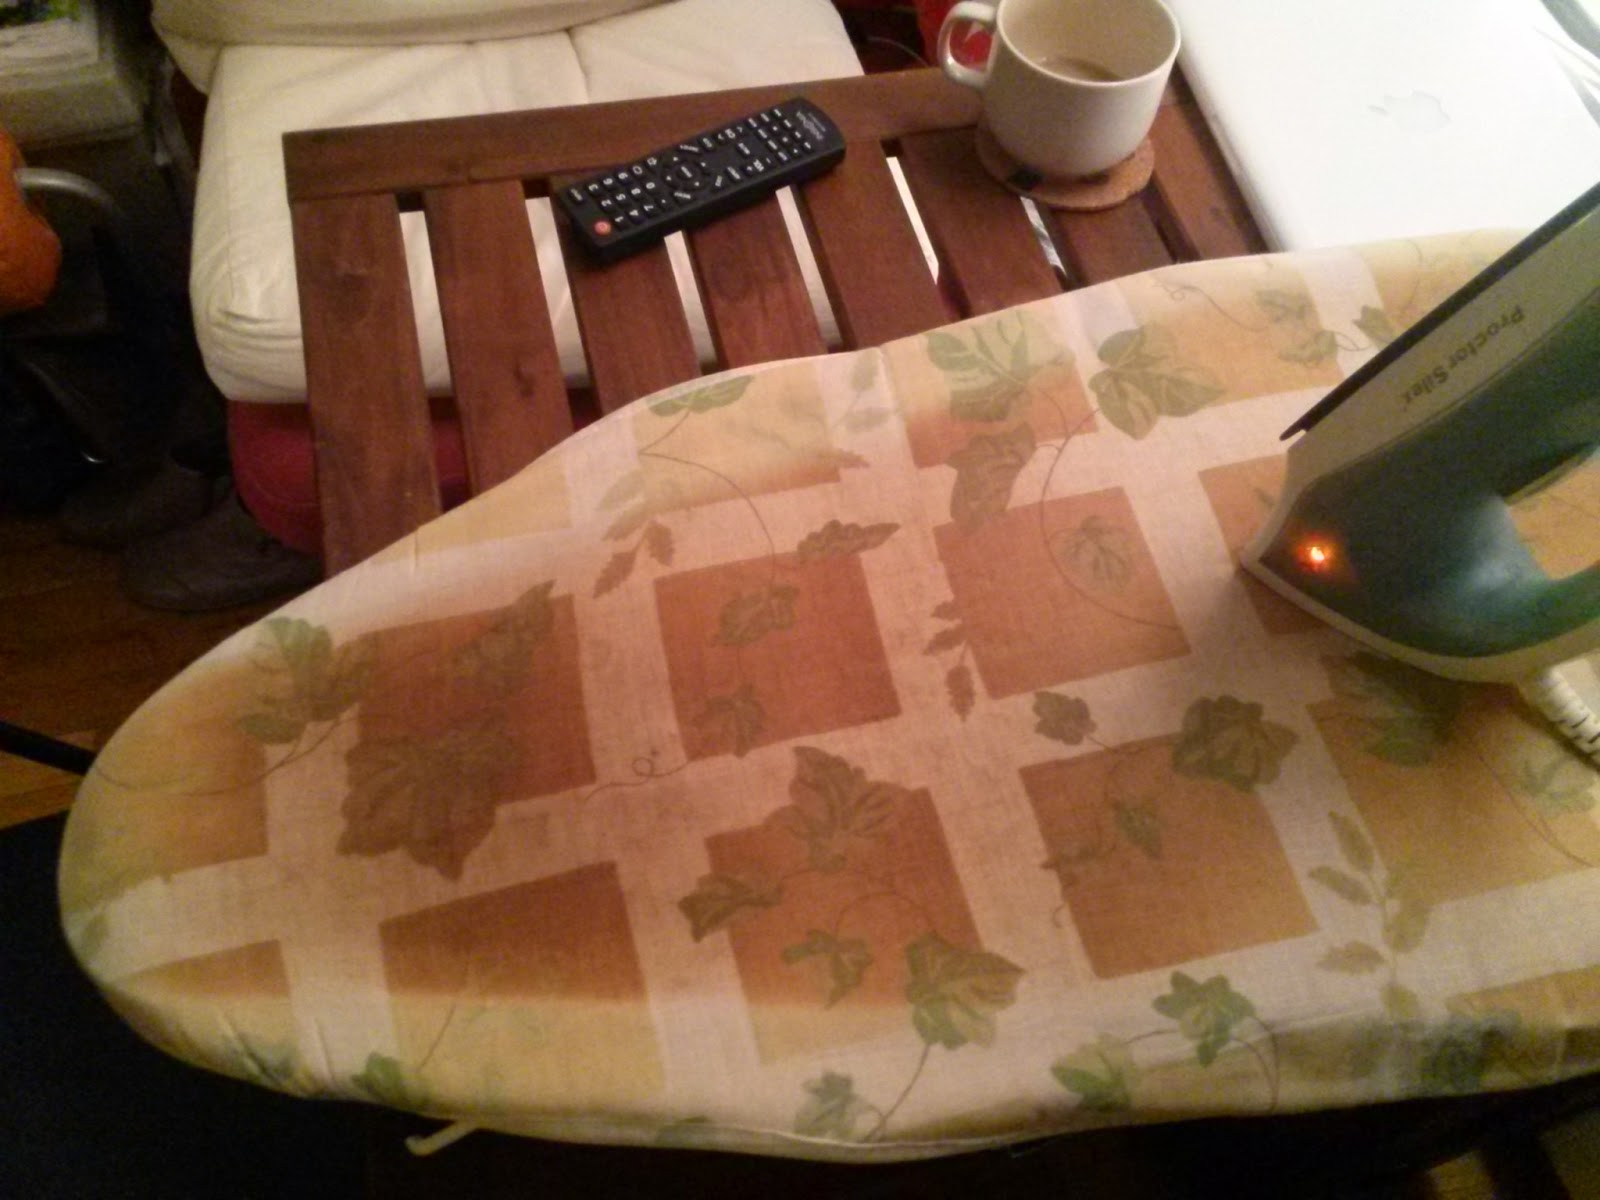 ironing board - image for English lesson with vocabulary